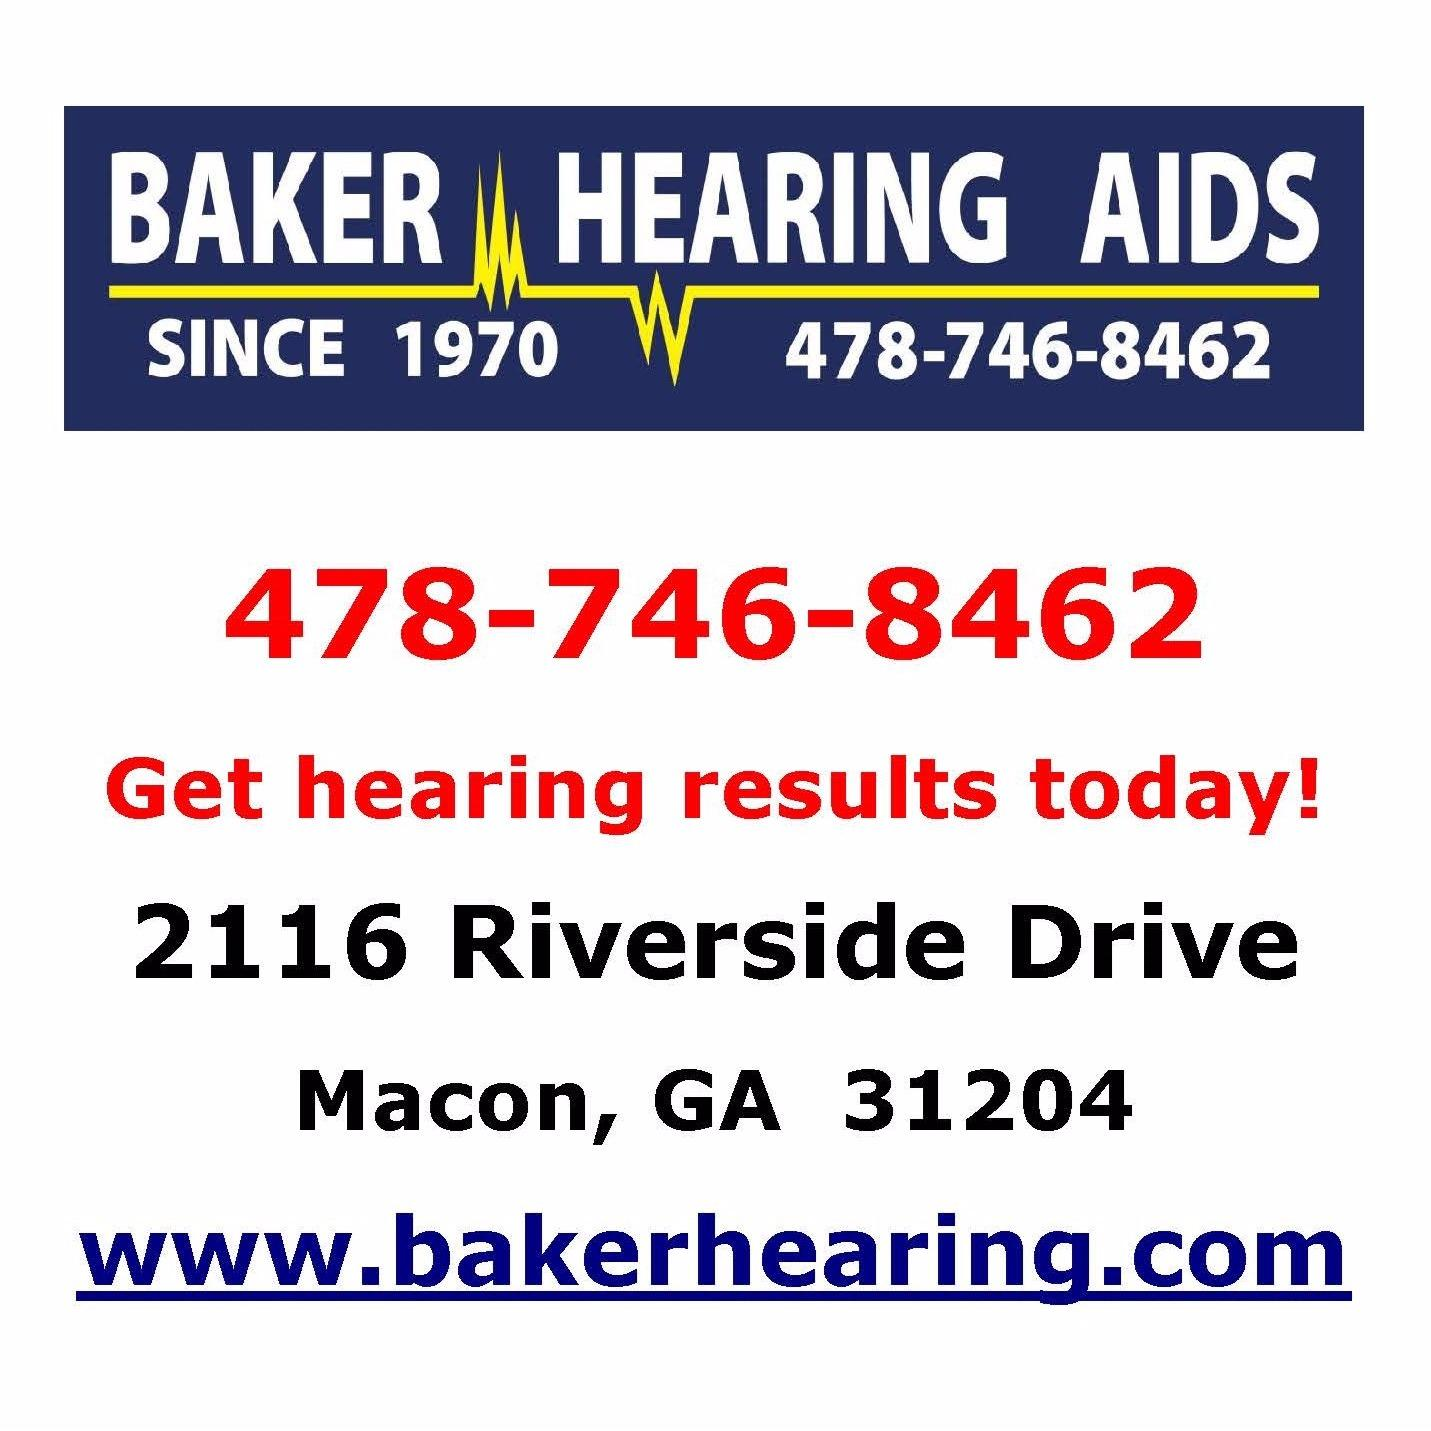 Baker Hearing Aids - Macon, GA - Medical Supplies